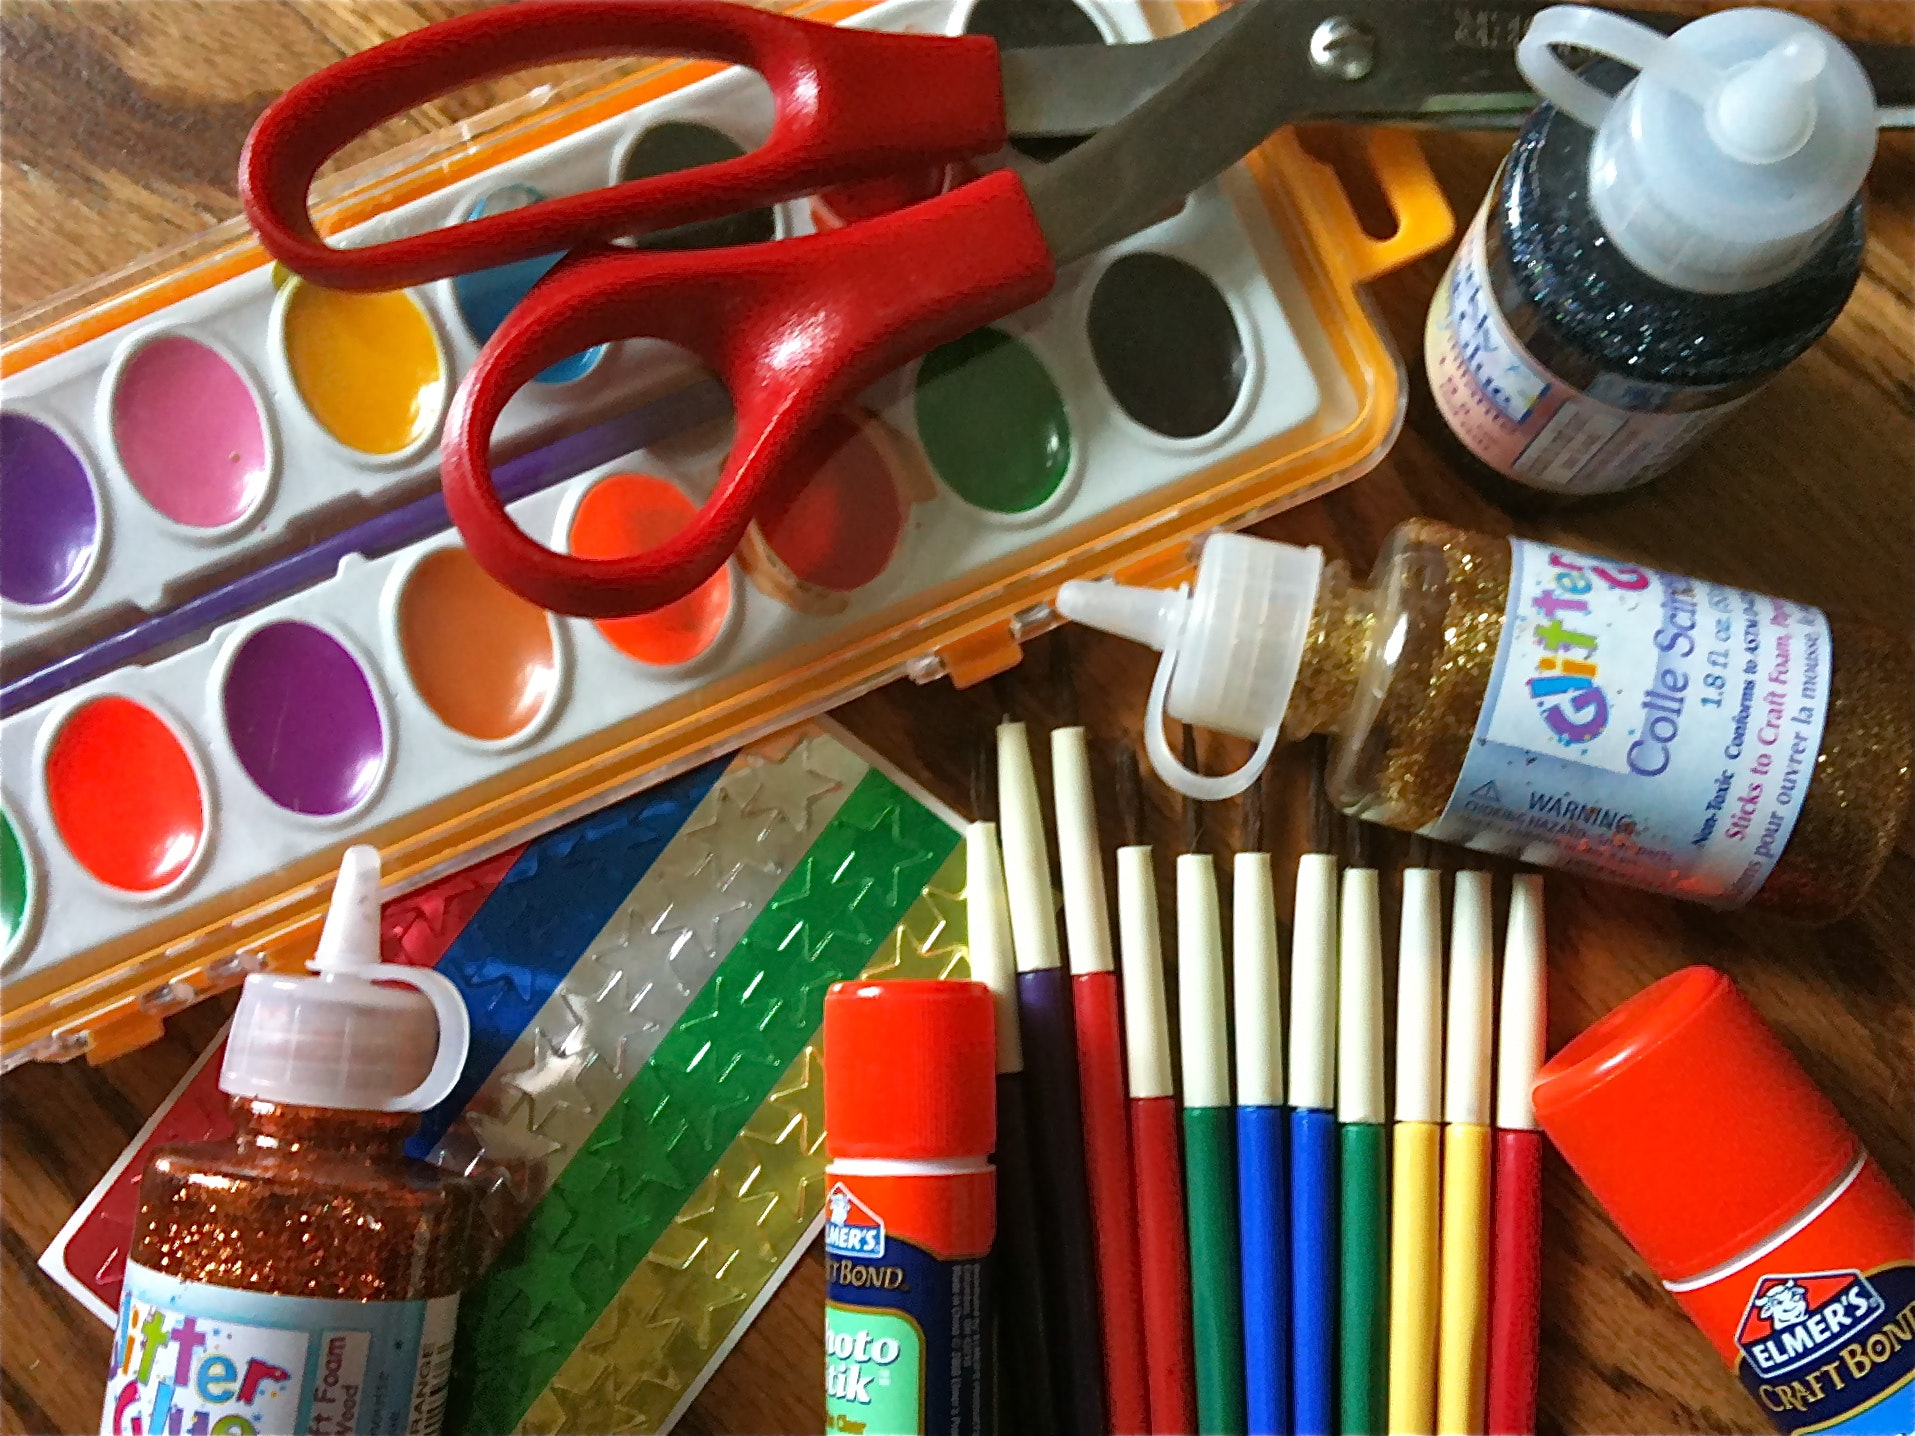 Take Time For Arts And Crafts - Berry Arts